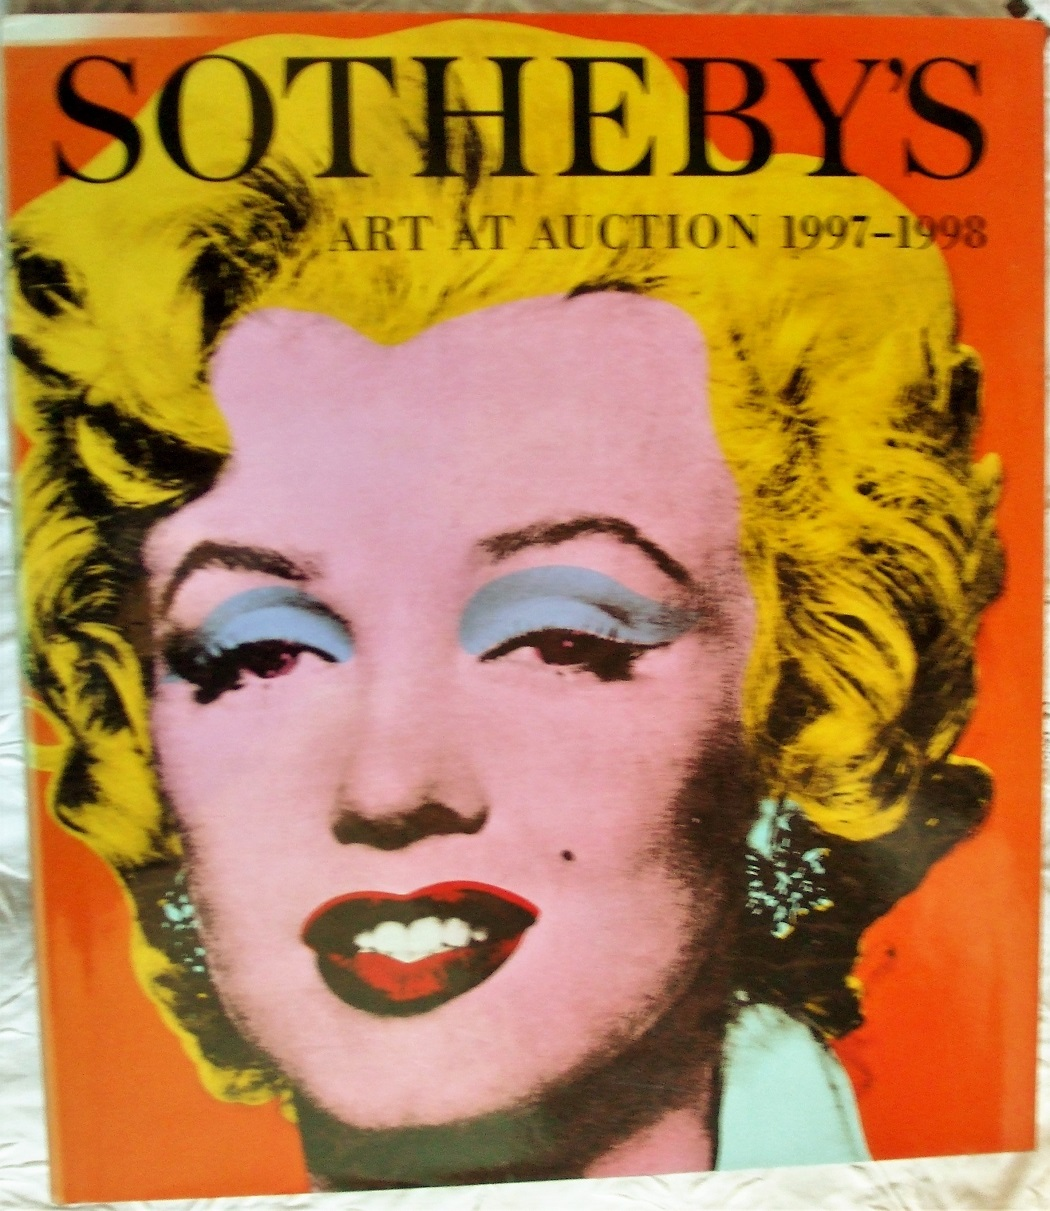 Sotheby's Art at Auction 1997 - 1998